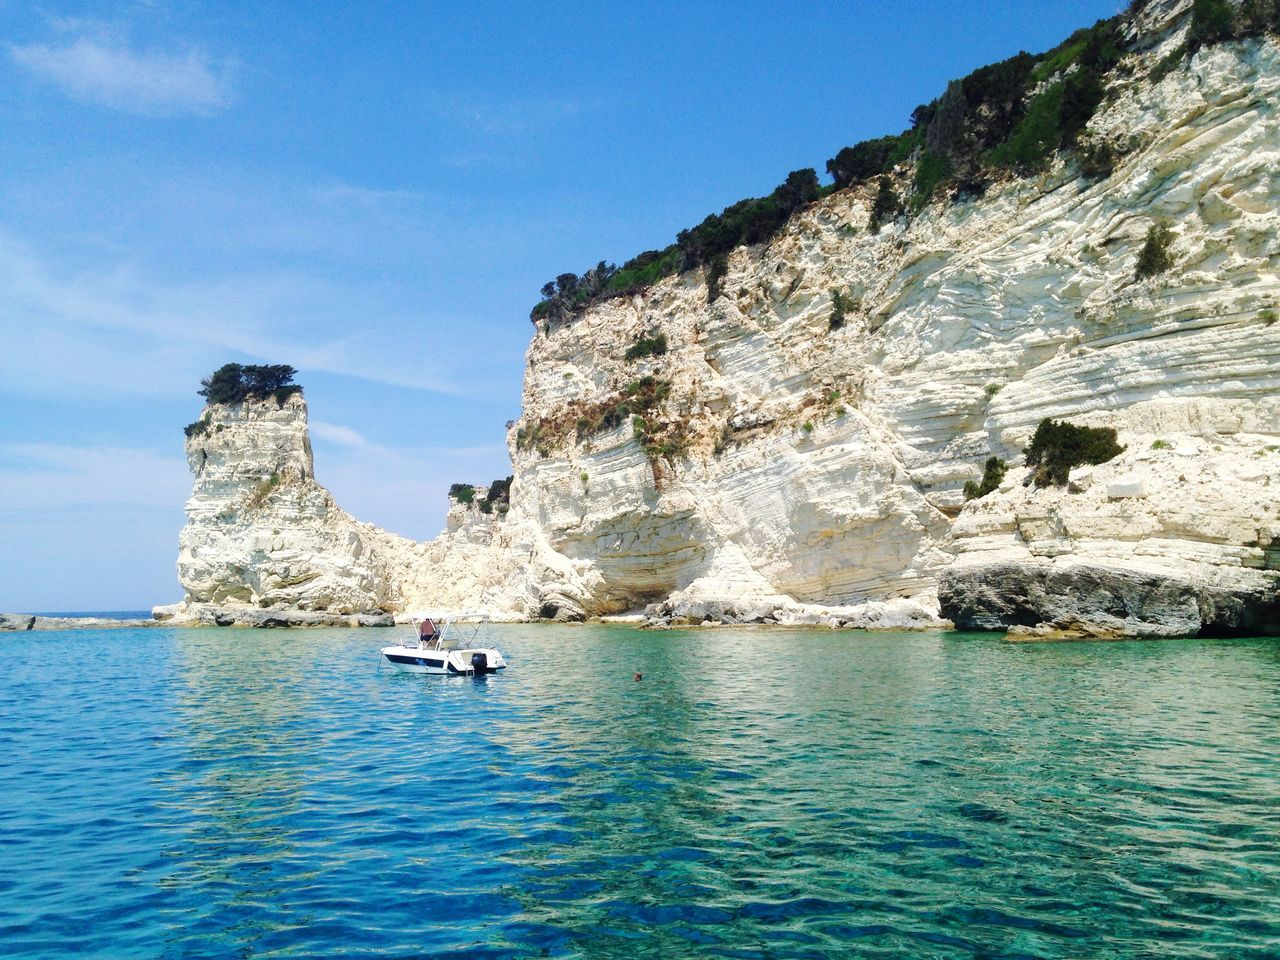 Hello World hite cliffs Cliffs Sea Blue Sky Bluesea Boats Summer Greece Island Fishing